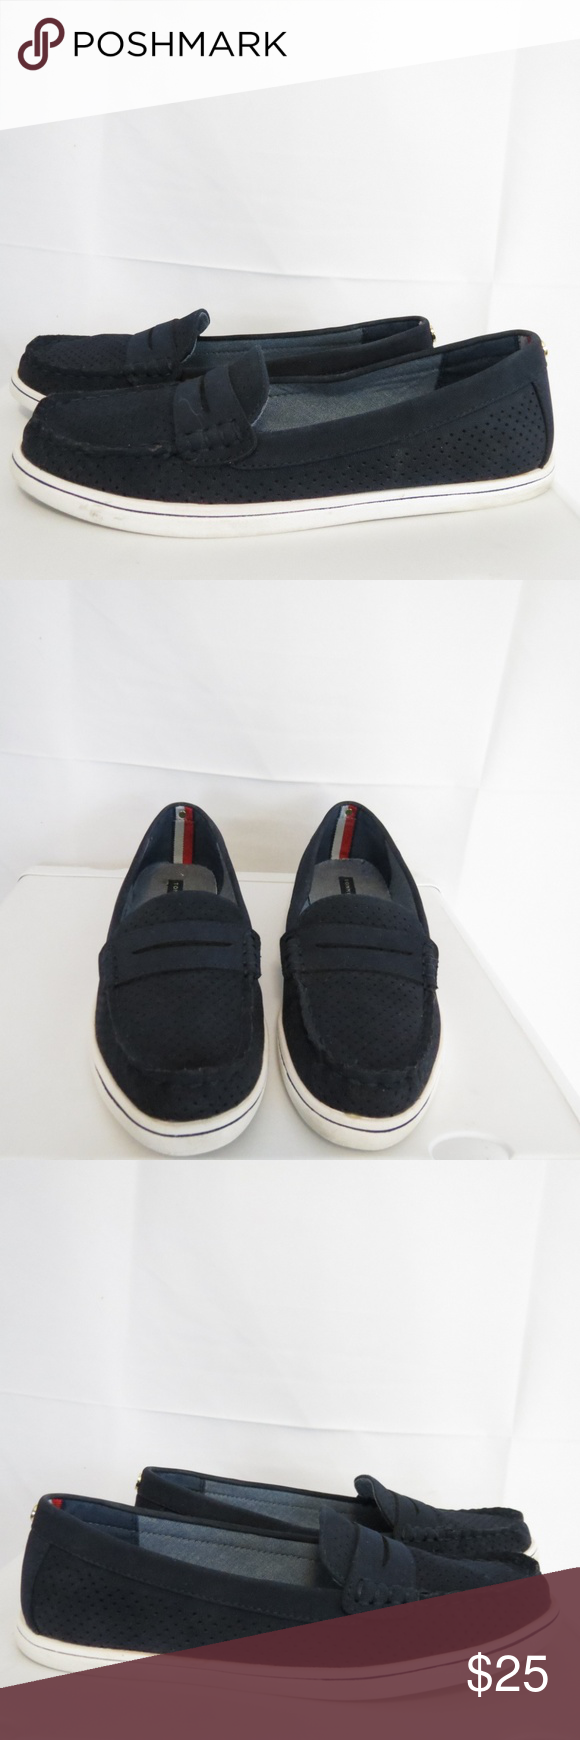 ccbaa49a420831 Tommy Hilfiger Women s 6.5M Penny Loafers Navy Tommy Hilfiger Women s 6.5M  Penny Loafers Navy